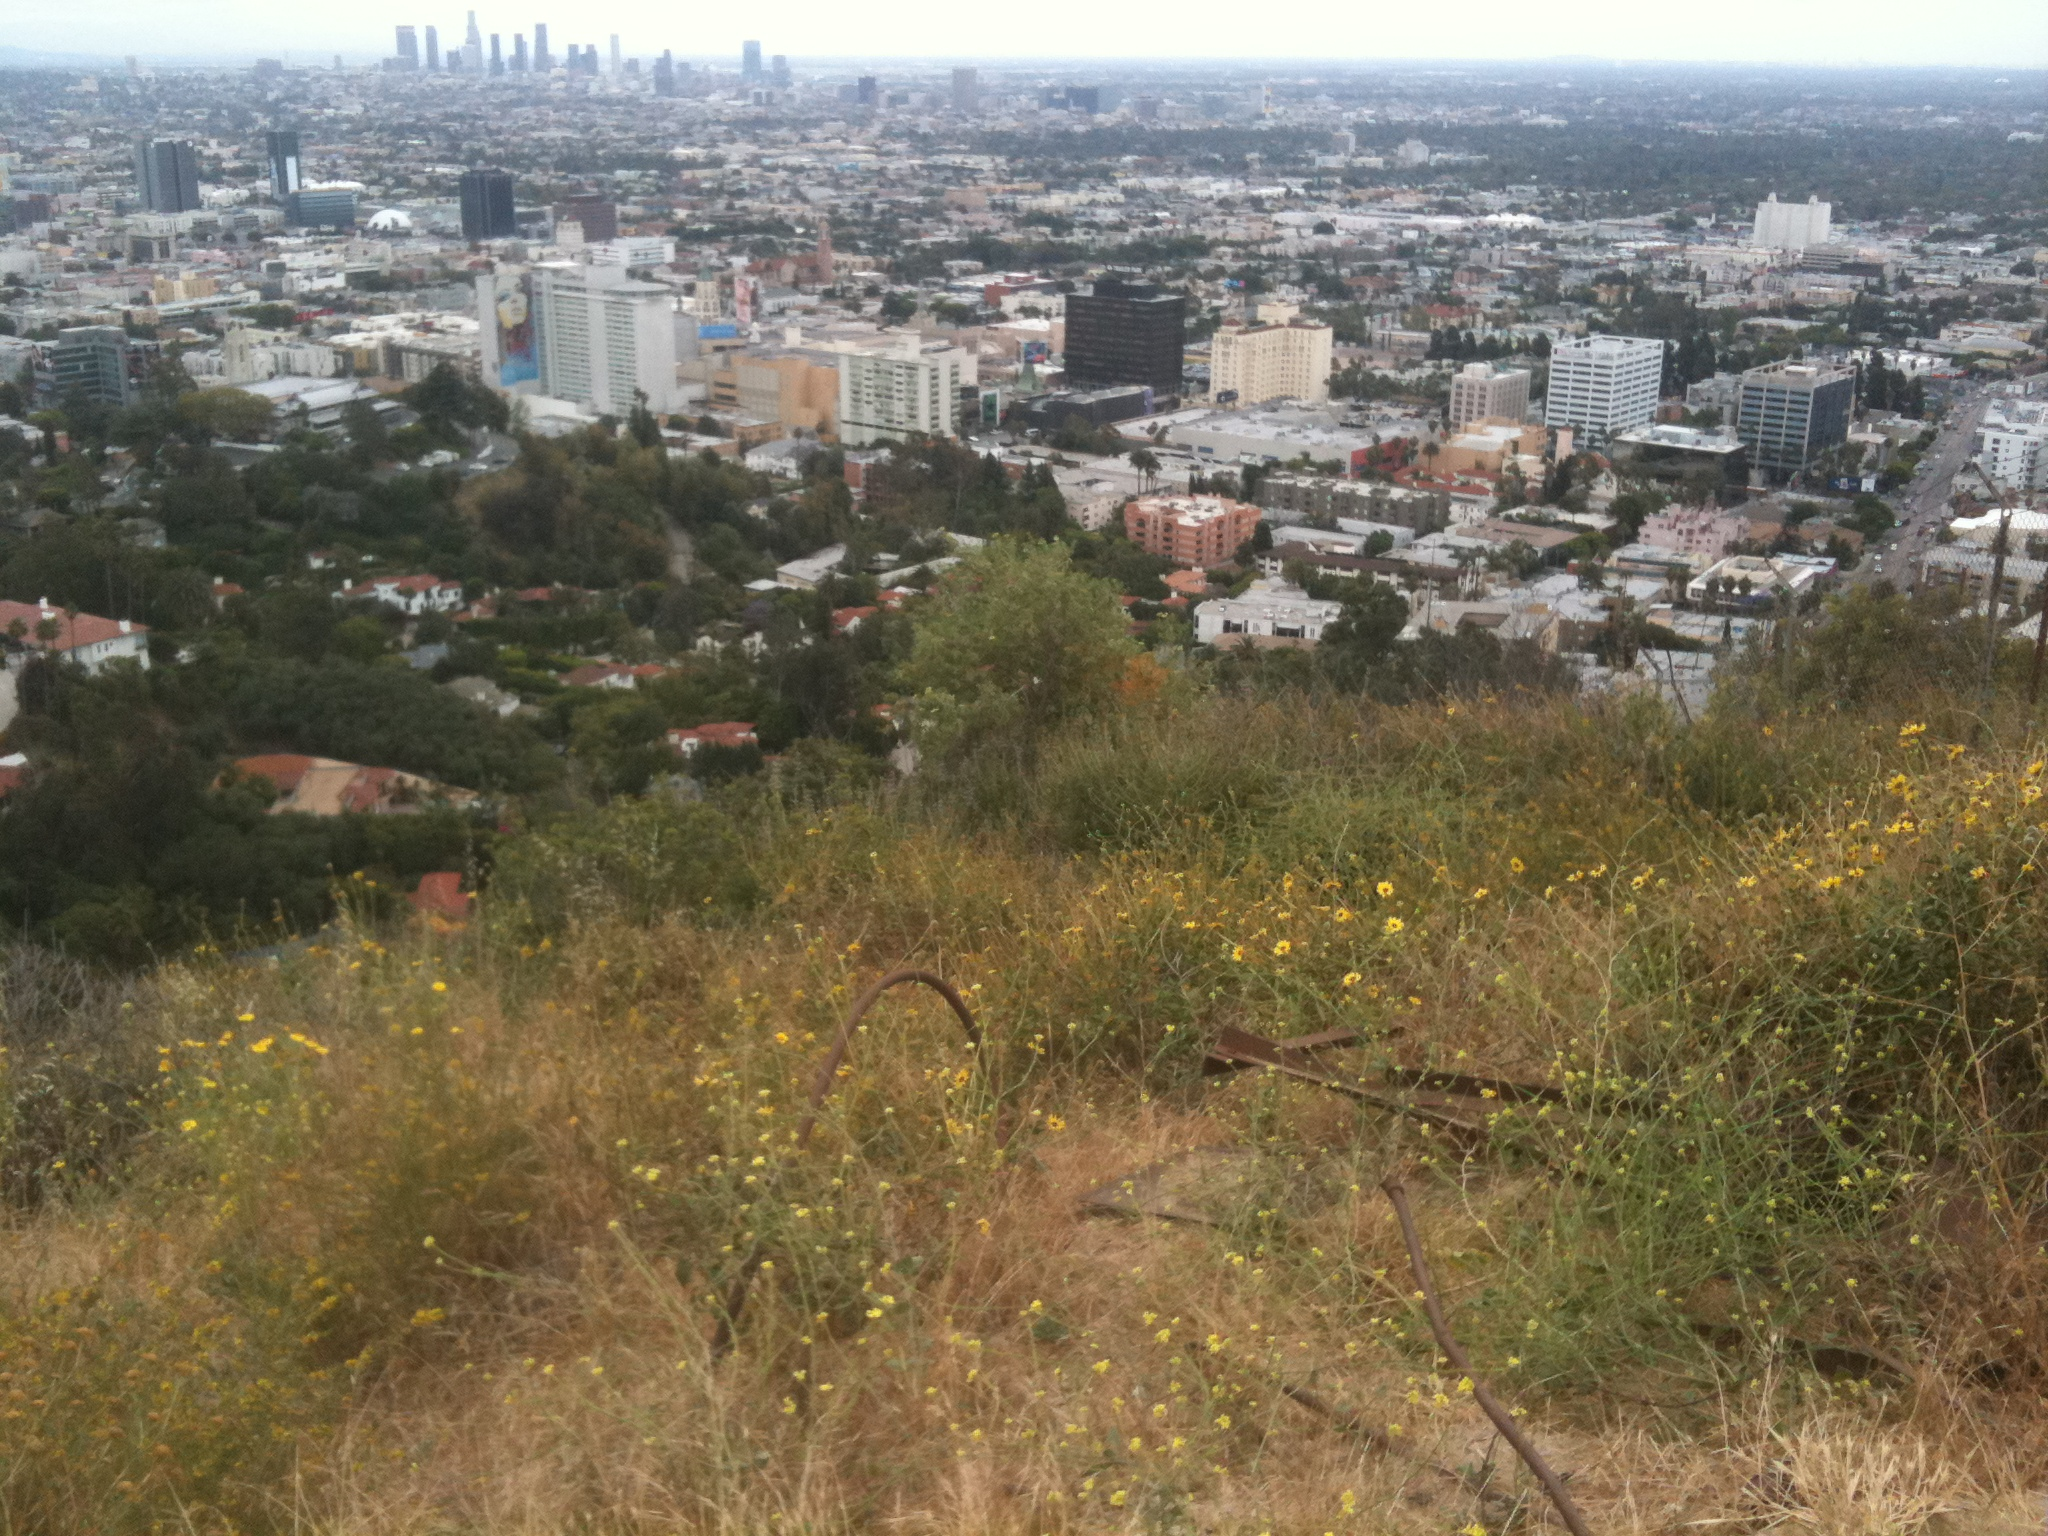 Los Angeles from Runyon Canyon Park 2011